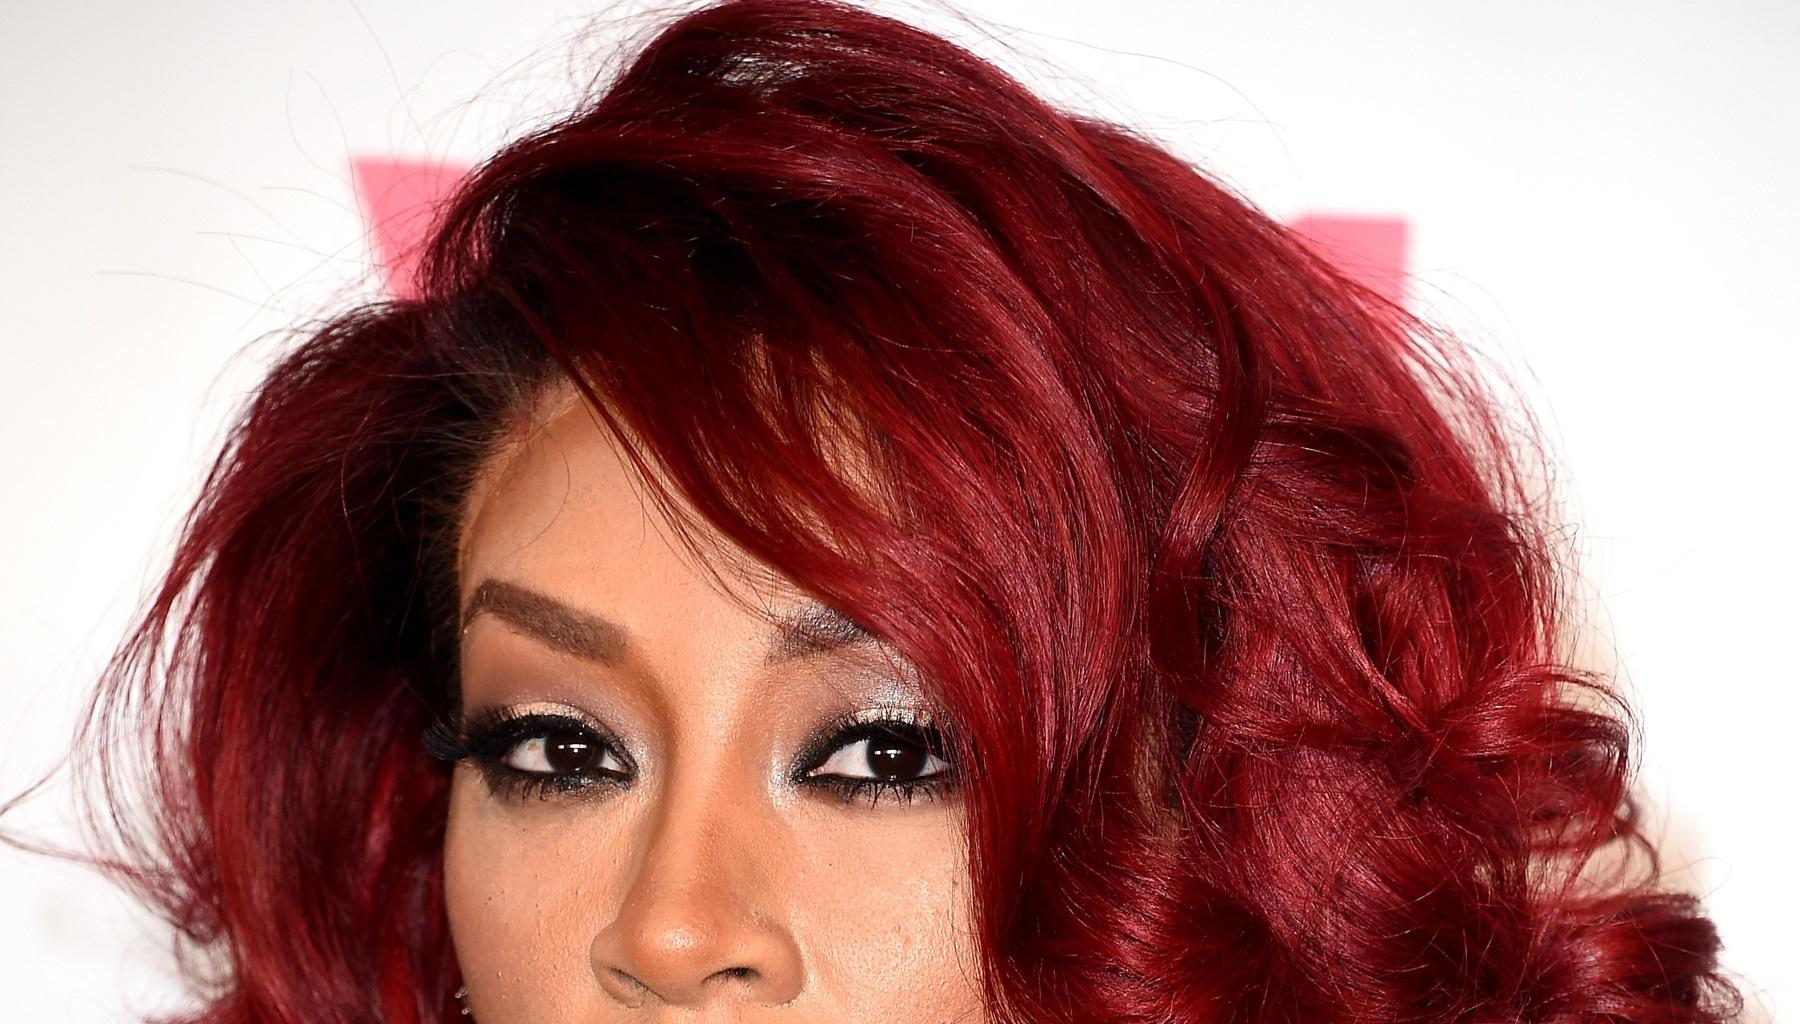 K. Michelle Throws Her Son, Chase Bowman, And Her Ex, Mickey 'Memphitz' Wright, Under The Bus For This Reason -- Video Sparks Heated Debate